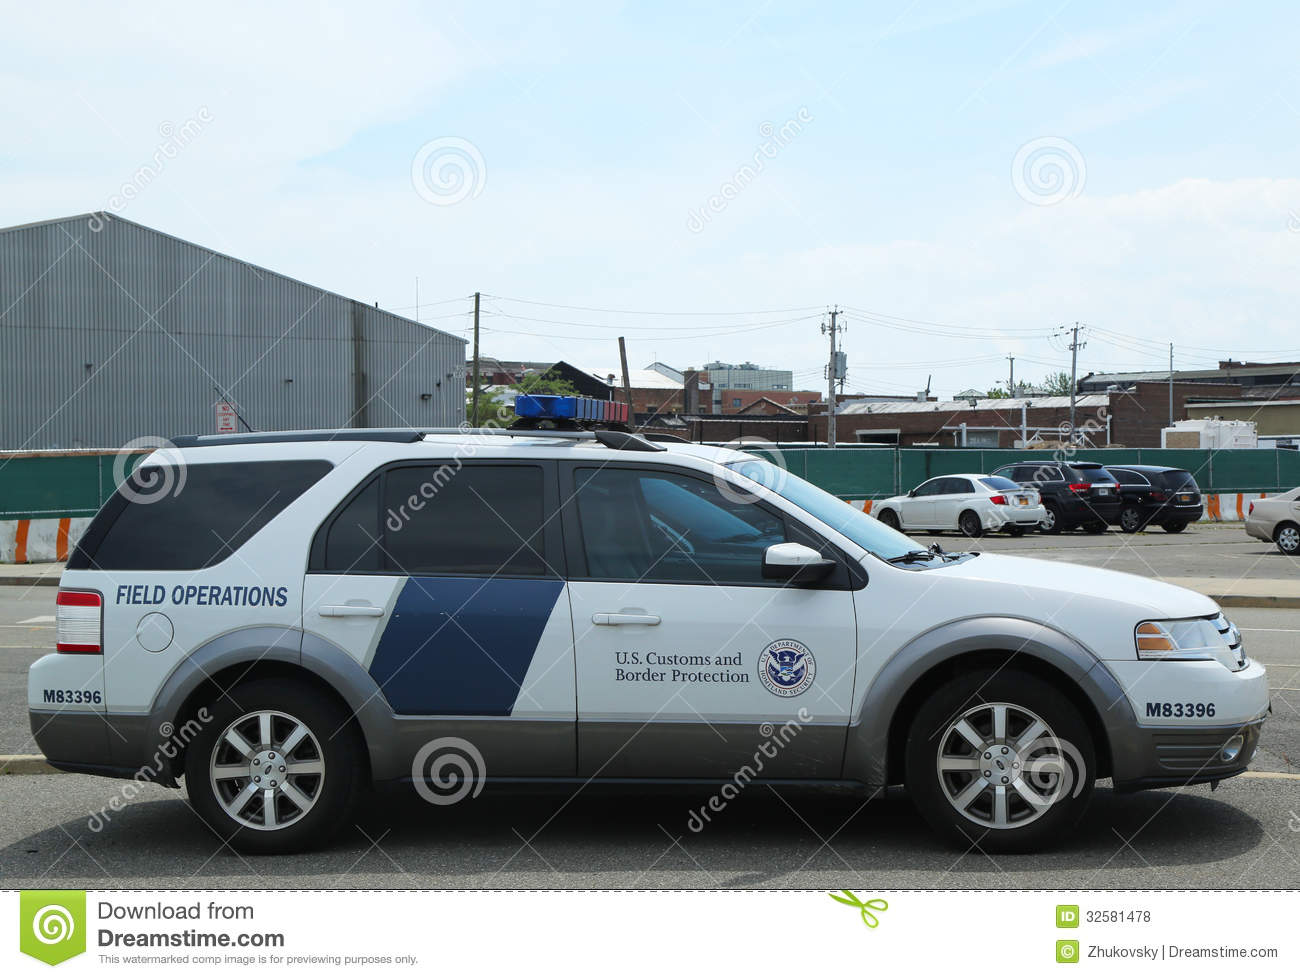 border protection 2 days ago  a border patrol agent was shot at early sunday morning while sitting in his  marked patrol car just north of the us-mexico border, authorities.